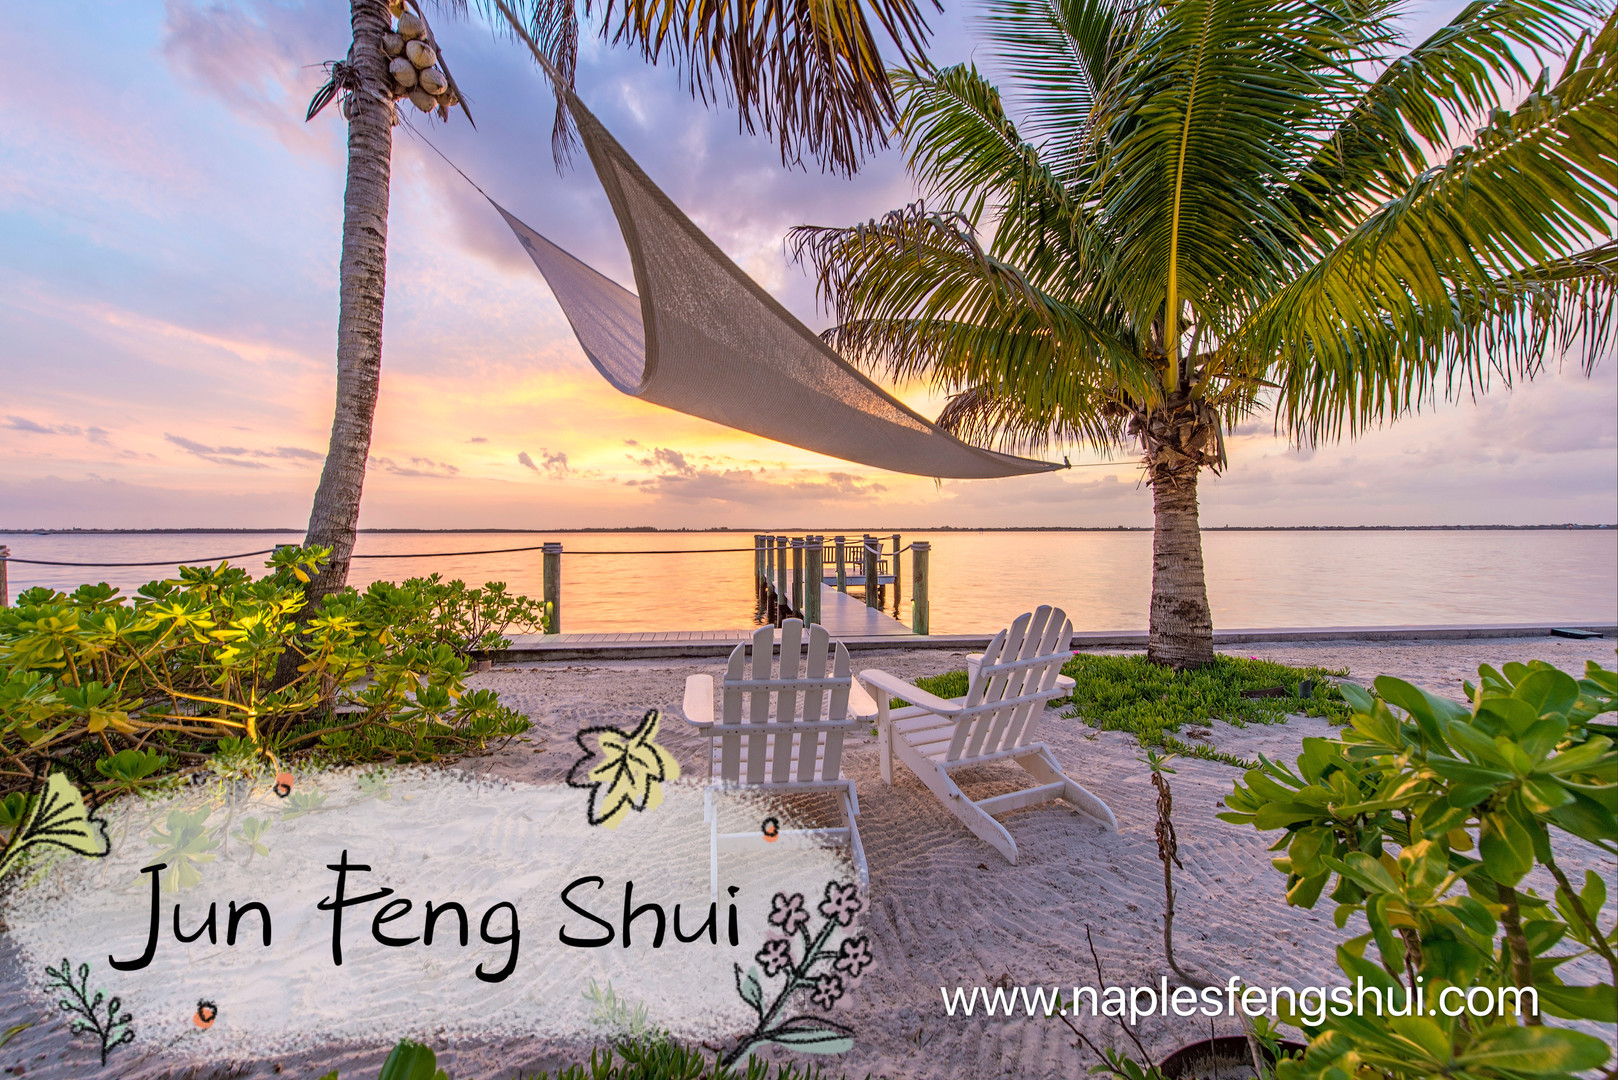 Jun Feng Shui - Traditional Chinese Feng Shui Consulting